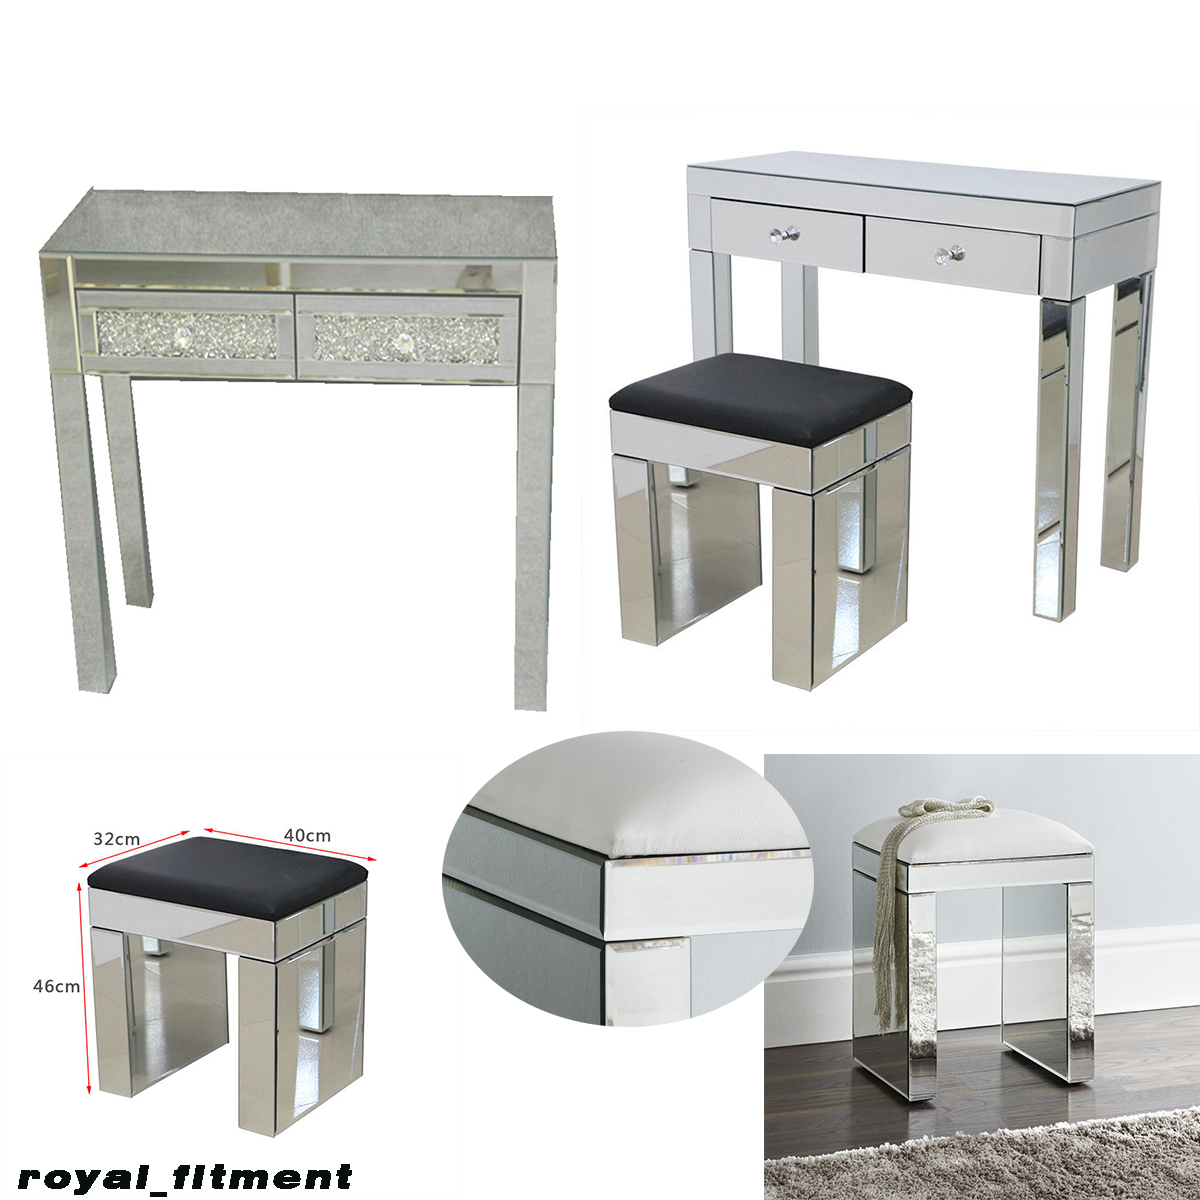 Details About Mirrored Furniture Gl Dressing Table 2 Drawers With Console Stool Bedroom F